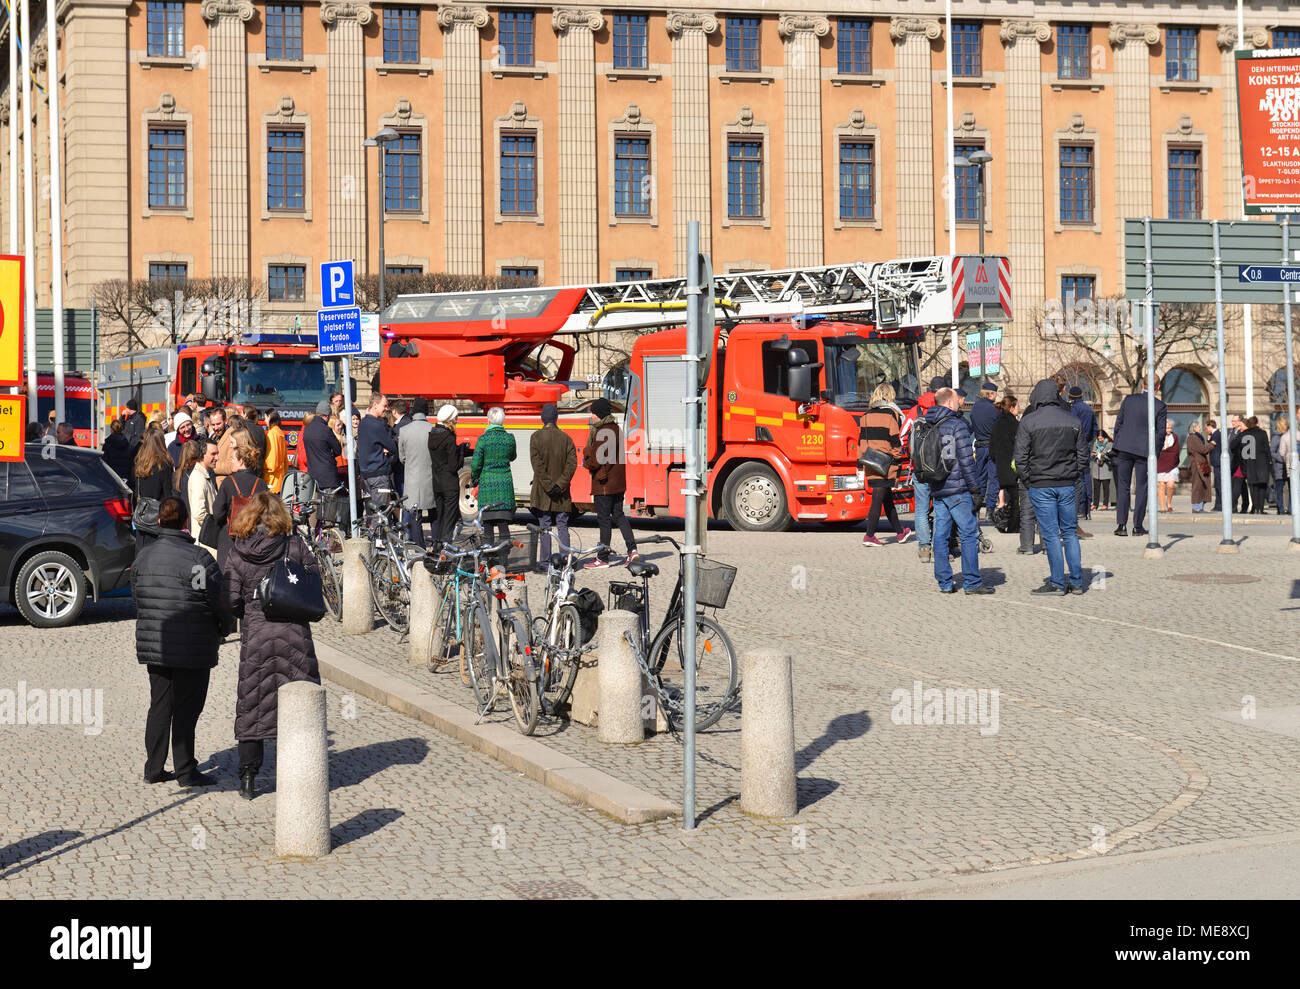 Fire trucks, police and rescue vehicles on Gustav Adolfs torg (square). People evacuated from Ministry of Foreign  Affairs - Stock Image